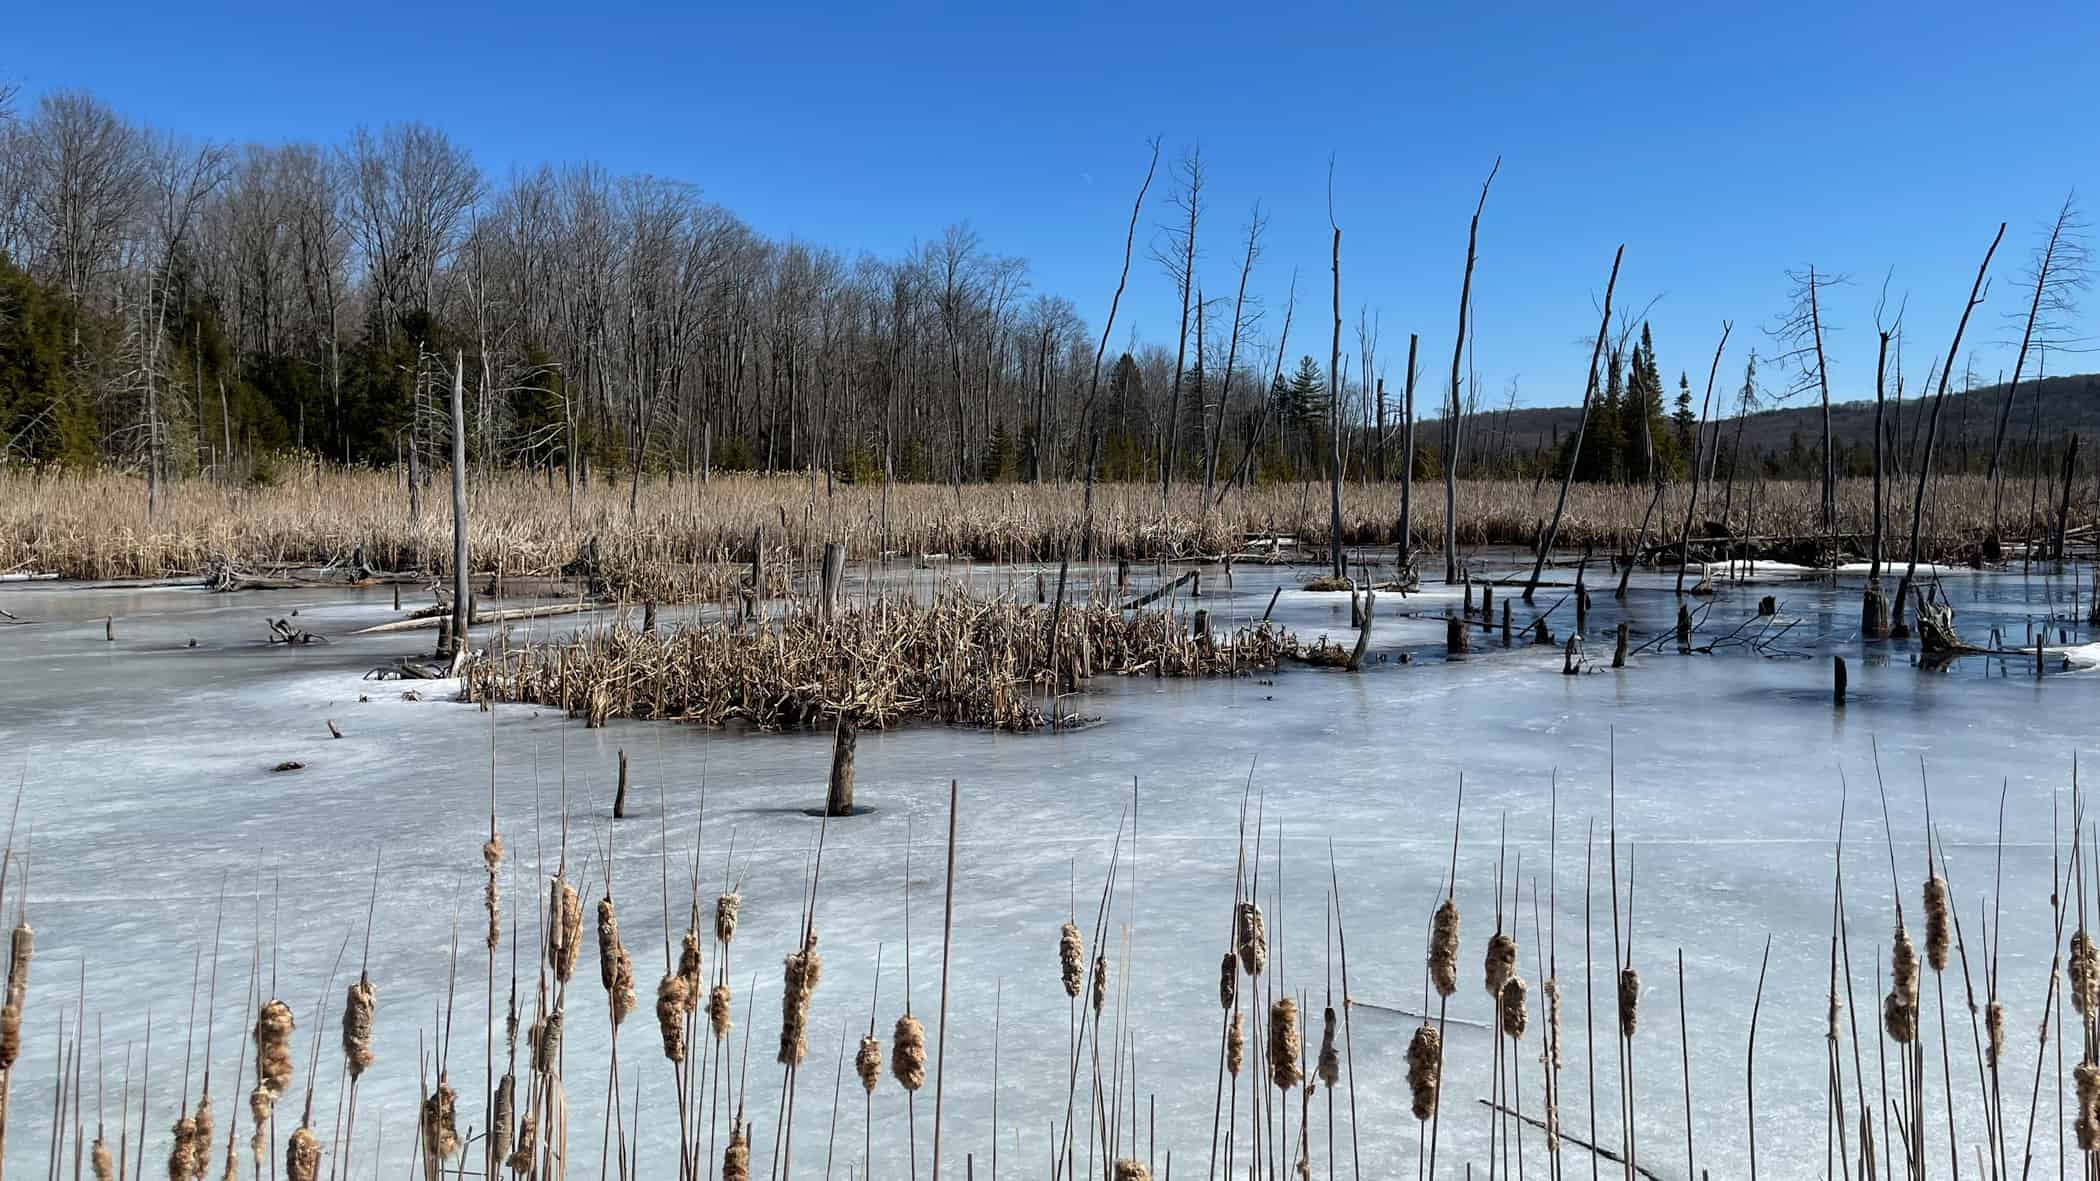 March - Ontario marshland